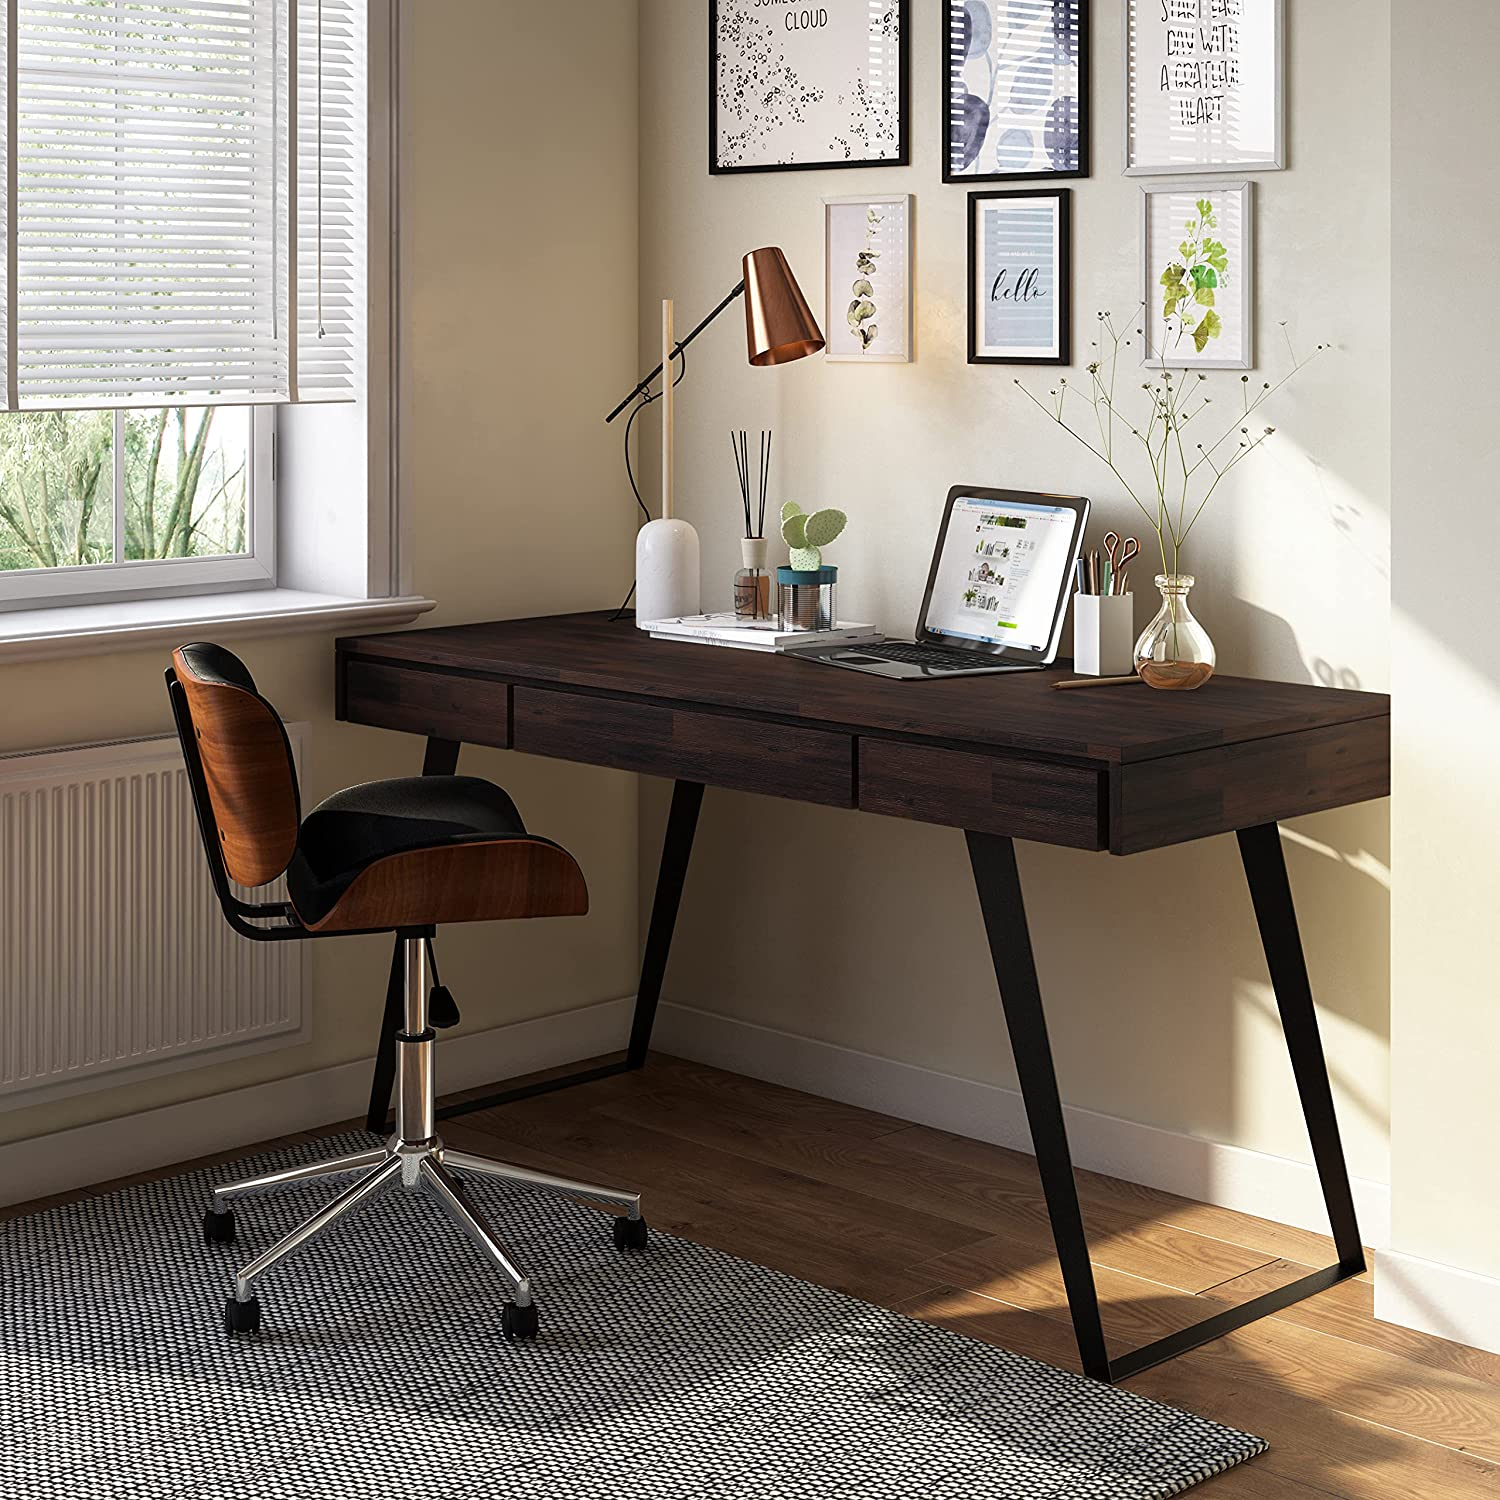 SIMPLIHOME Lowry SOLID WOOD and Metal Modern Industrial 54 inch Wide Home Office Desk, Writing Table, Workstation, Study Table Furniture in Distressed Golden Wheat with 2 Drawerss